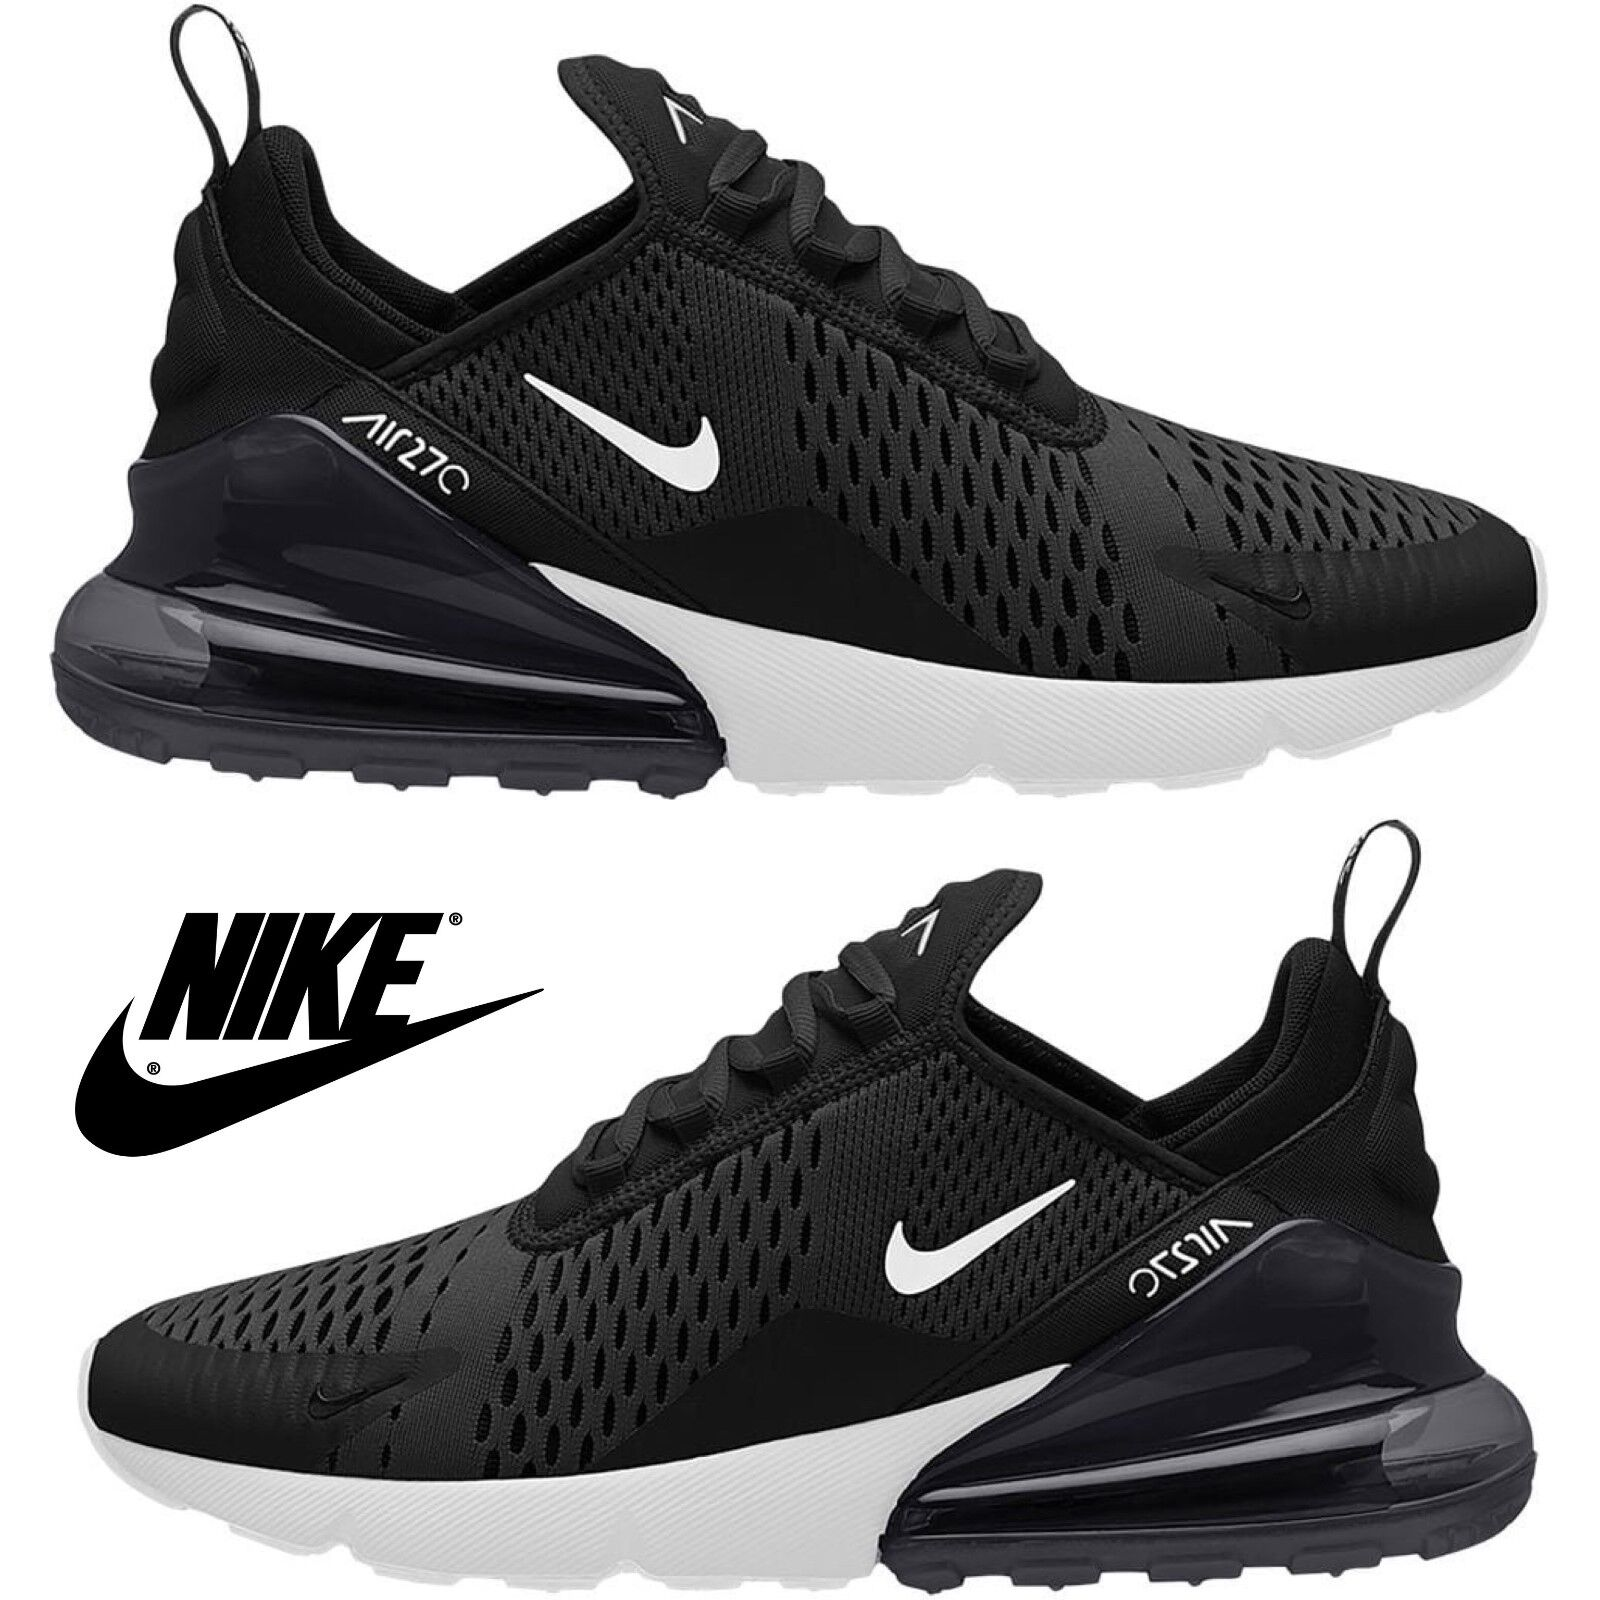 Nike Air Max 270 Men's Sneakers Casual Running Shoes Basketball Training Gym NIB